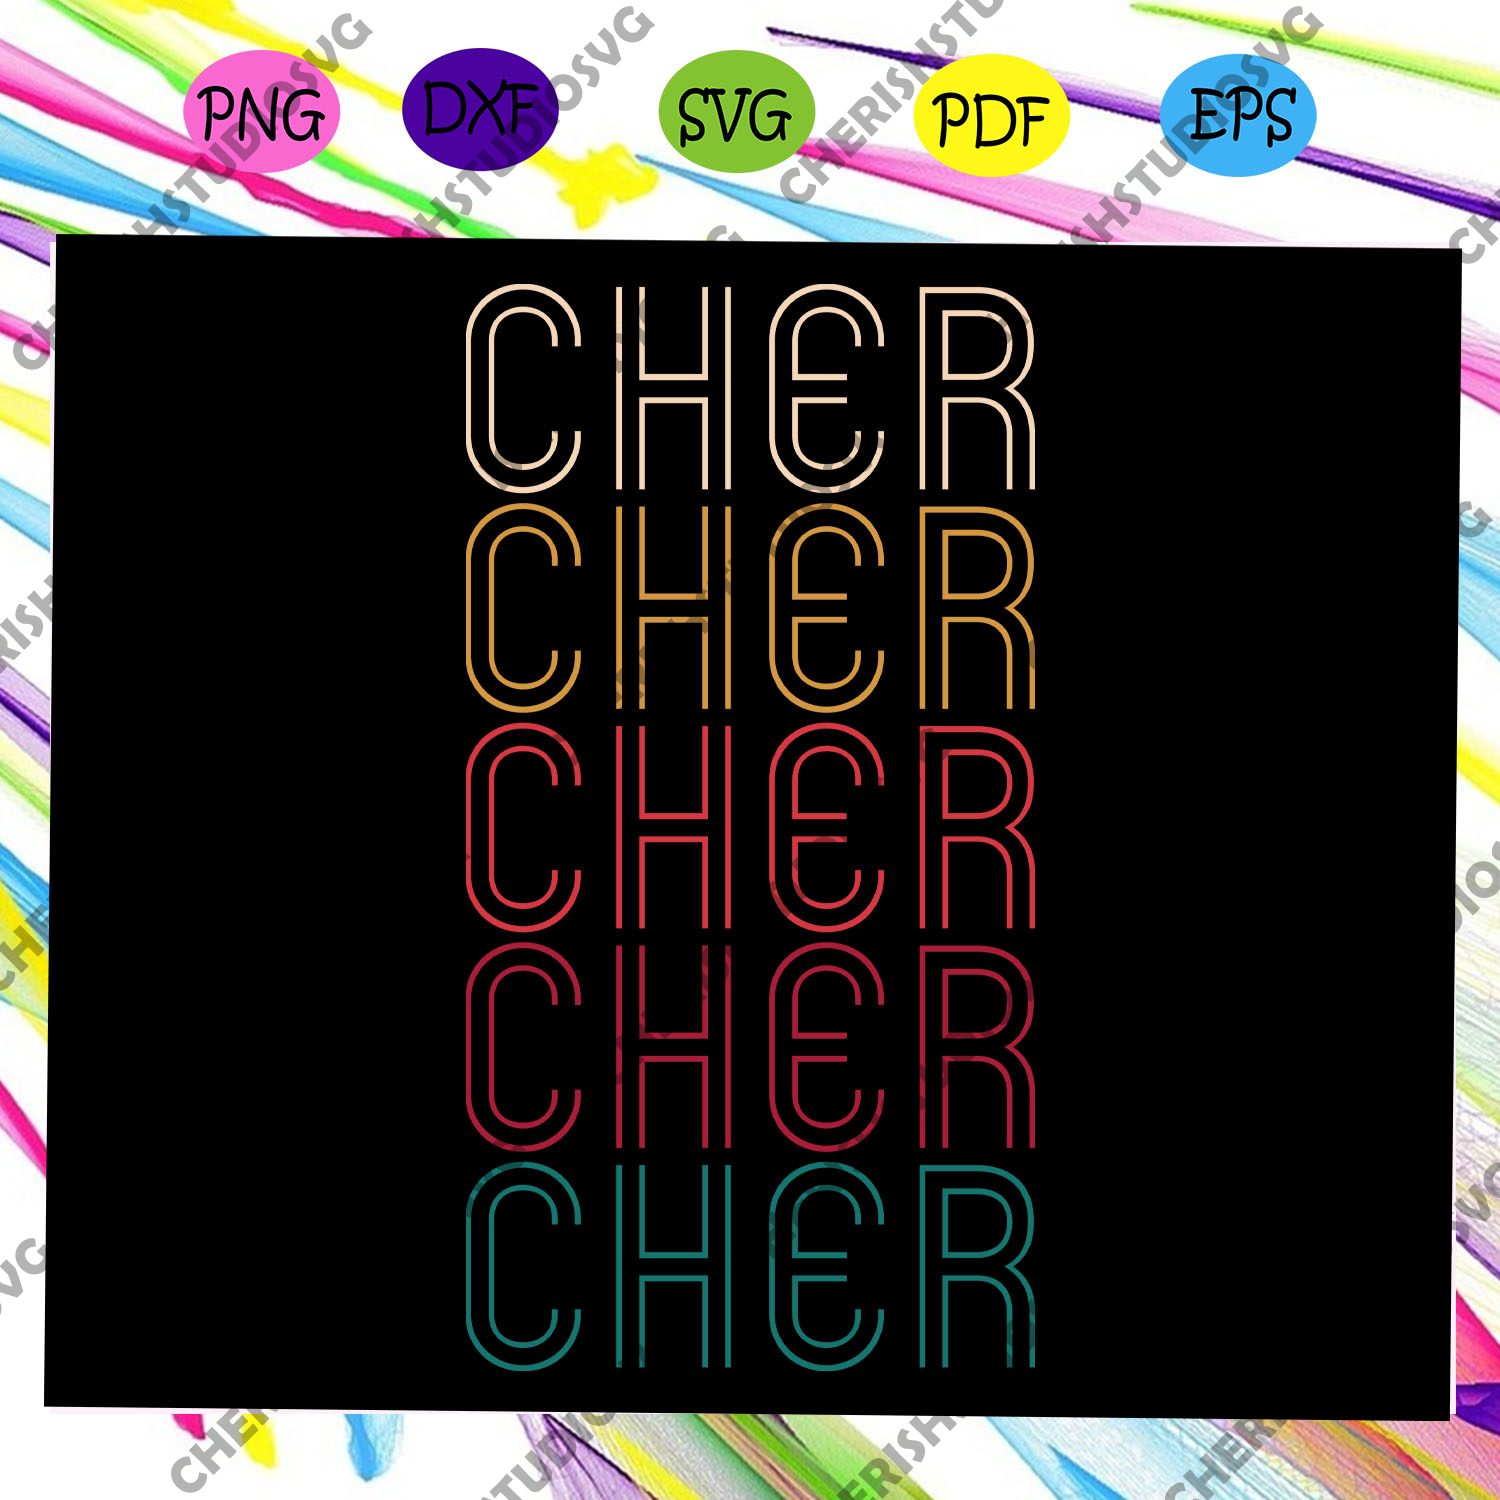 Cher shirt svg, retro svg, vintage svg, retro vintage For Silhouette, Files For Cricut, SVG, DXF, EPS, PNG Instant Downloa